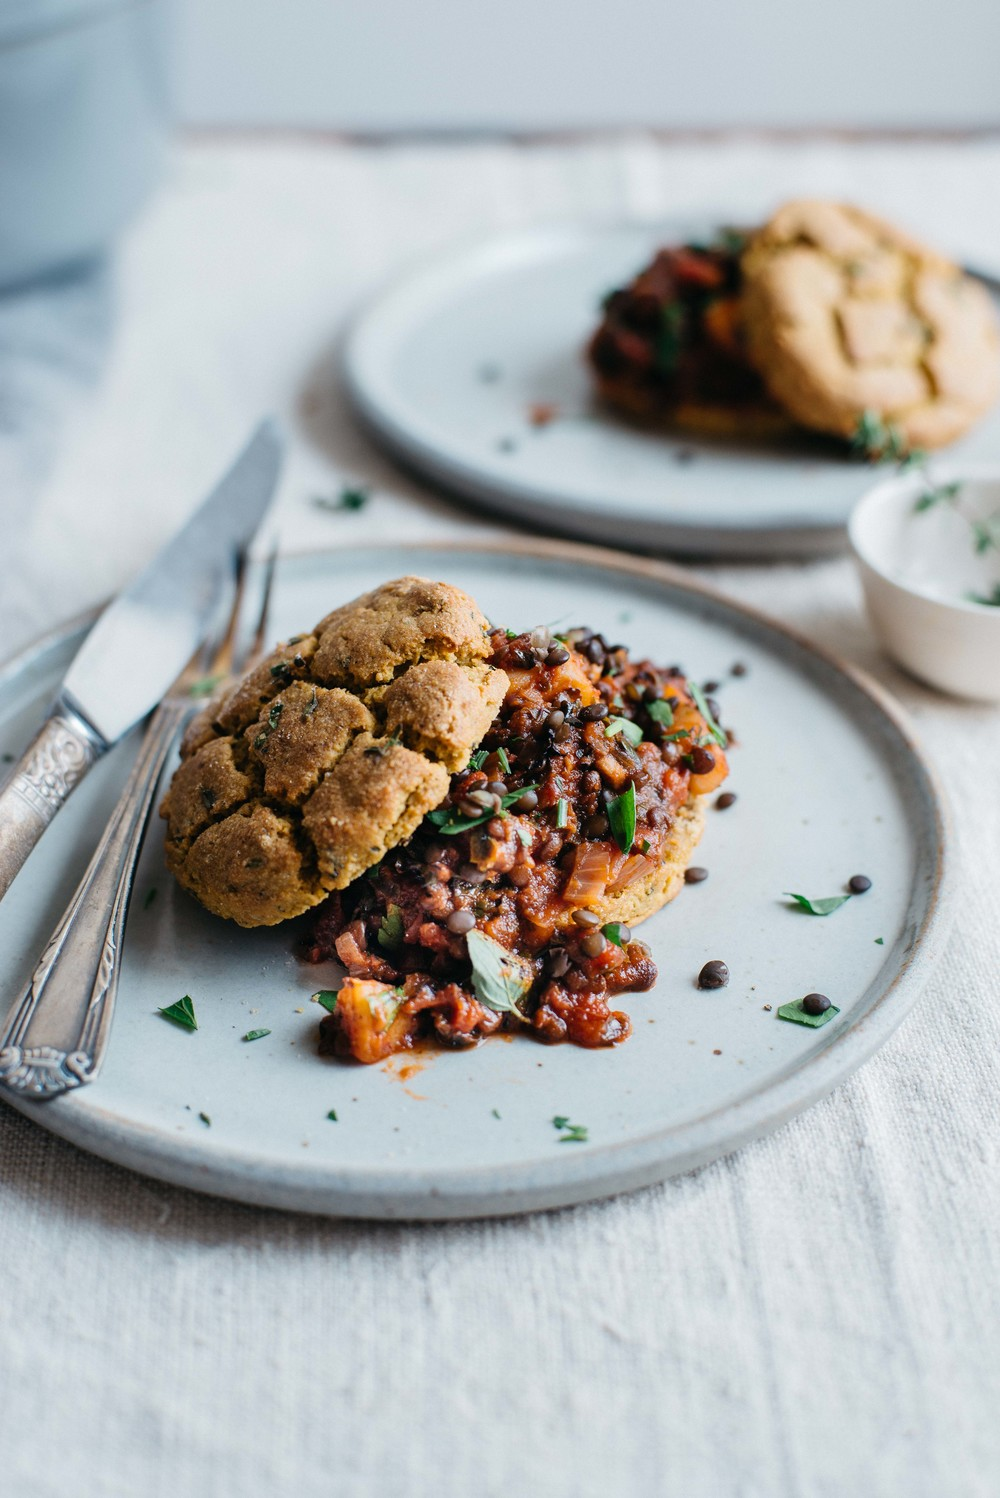 black lentil, sweet potato + kale chili w/ kabocha biscuits (v + gf) | dolly and oatmeal